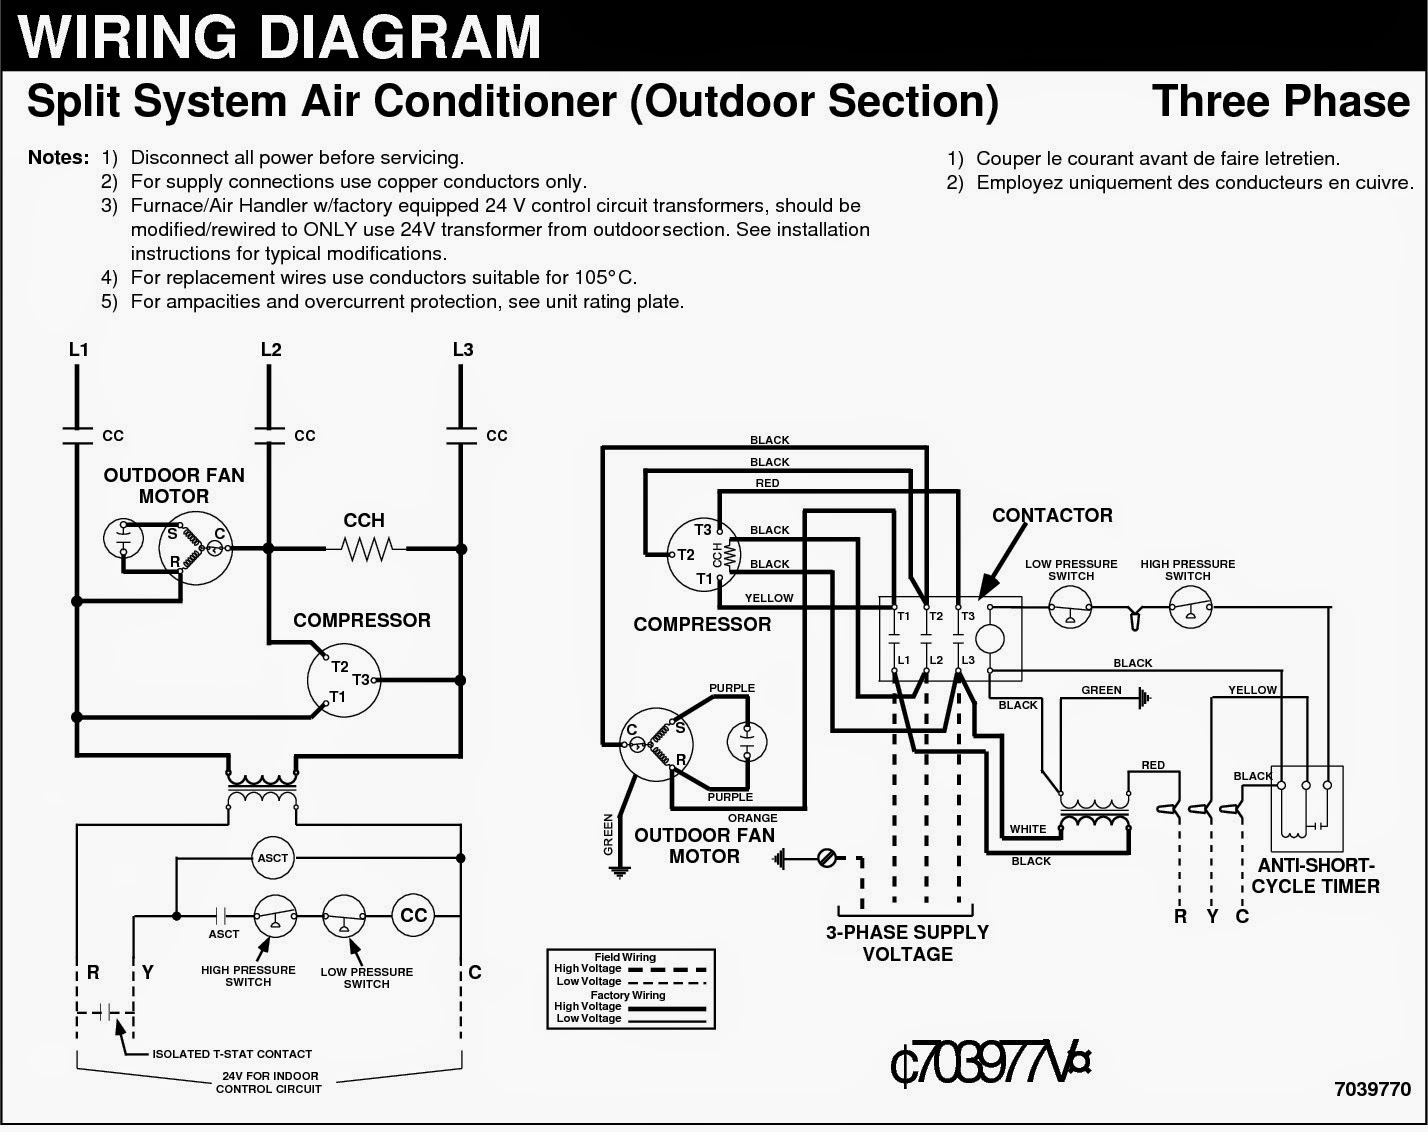 3+phase electrical wiring diagrams for air conditioning systems part two 3 phase socket wiring diagram at edmiracle.co